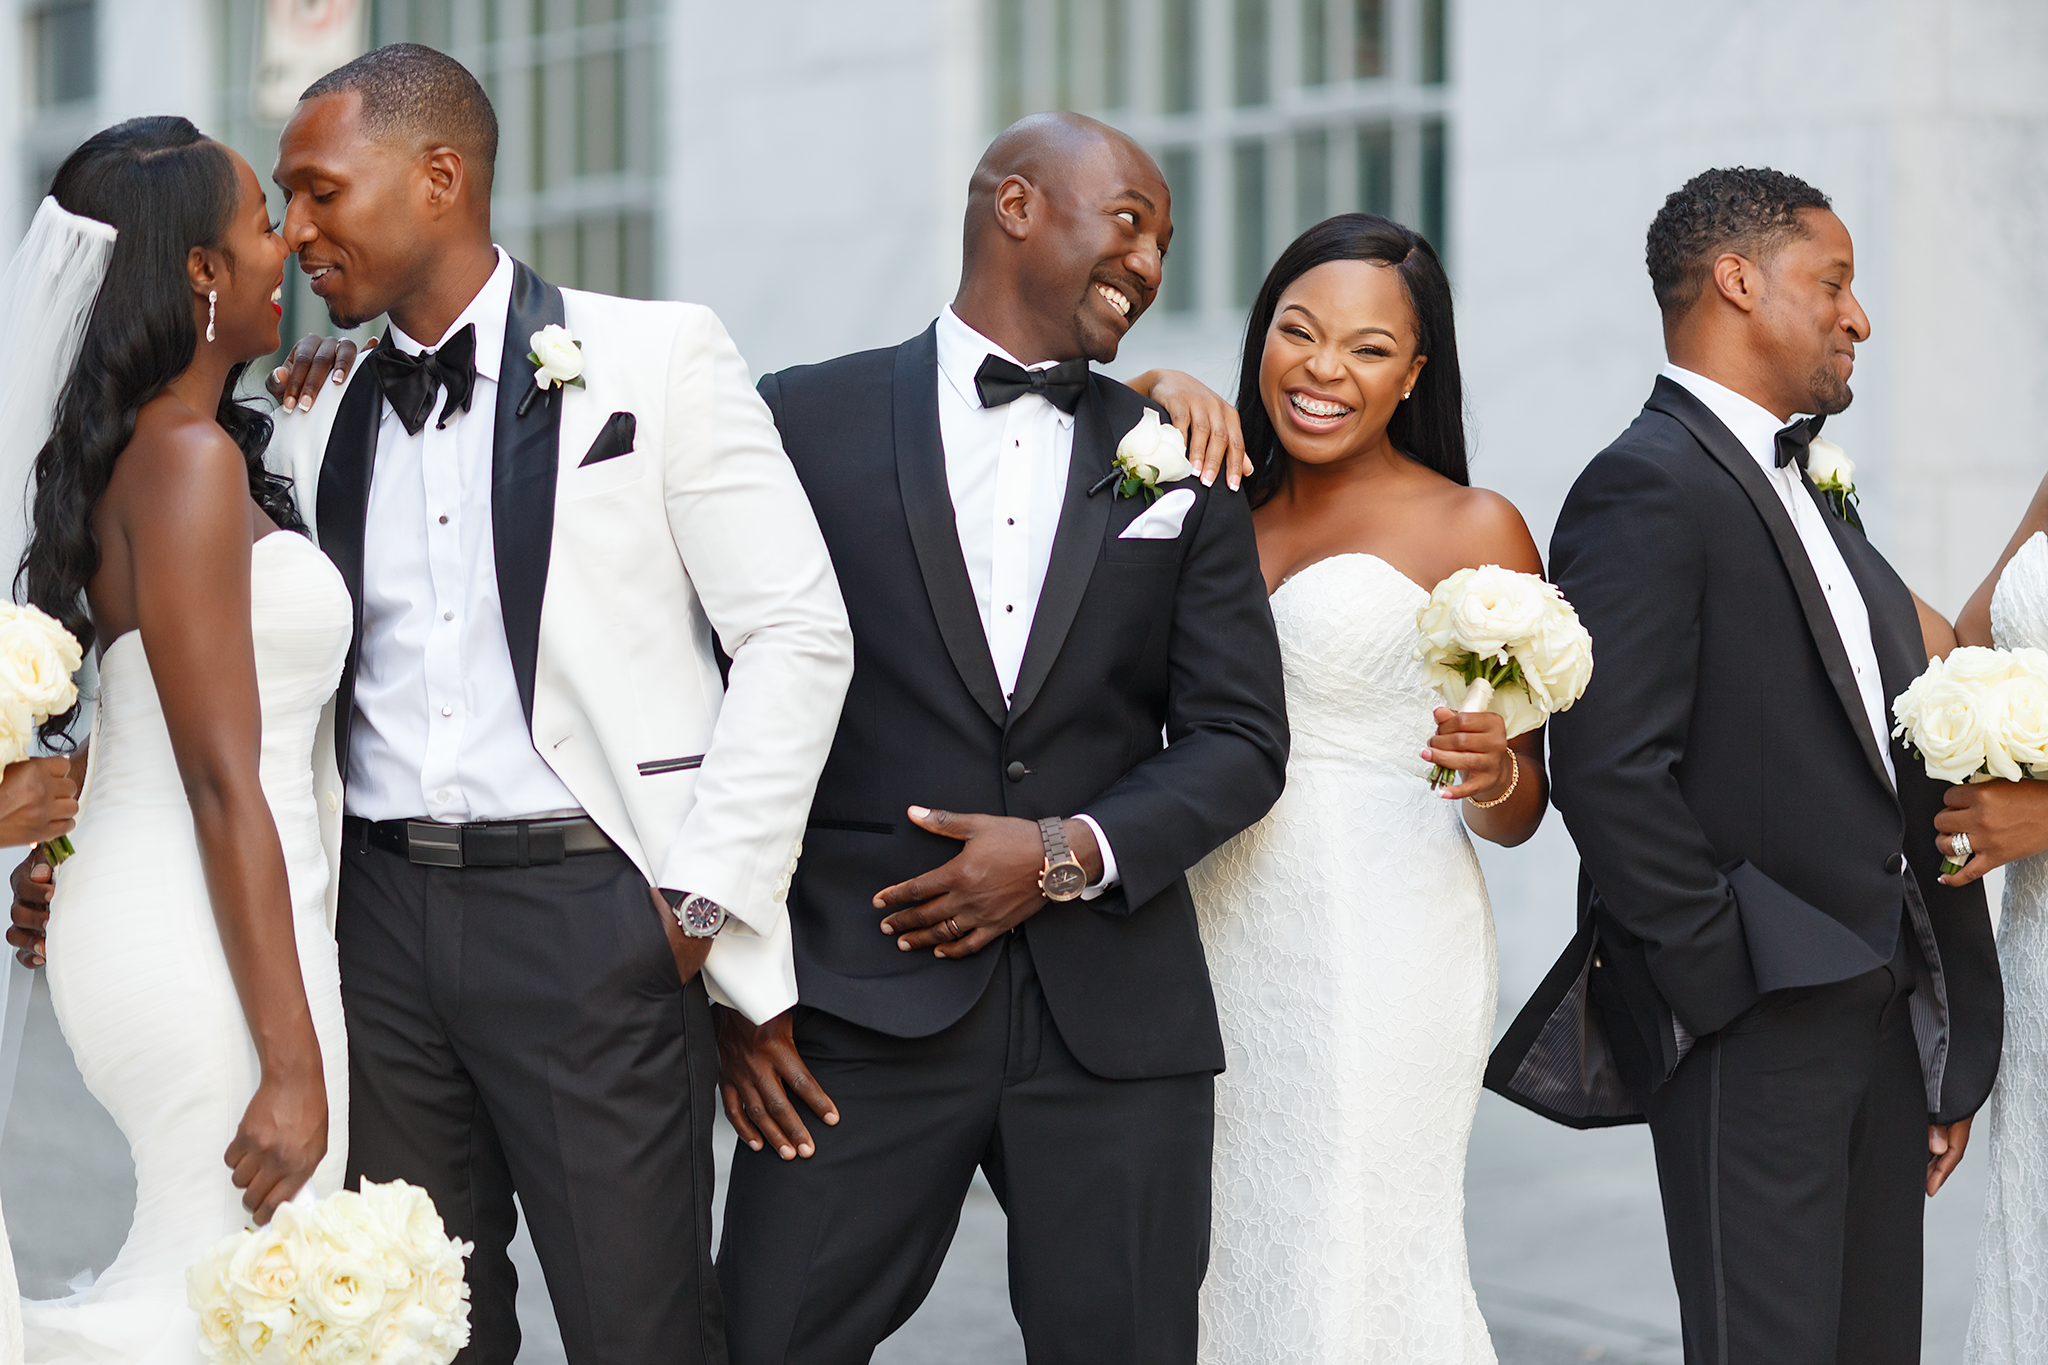 Atlanta_weddding_photography_Leah_Eversley_blacklove.png